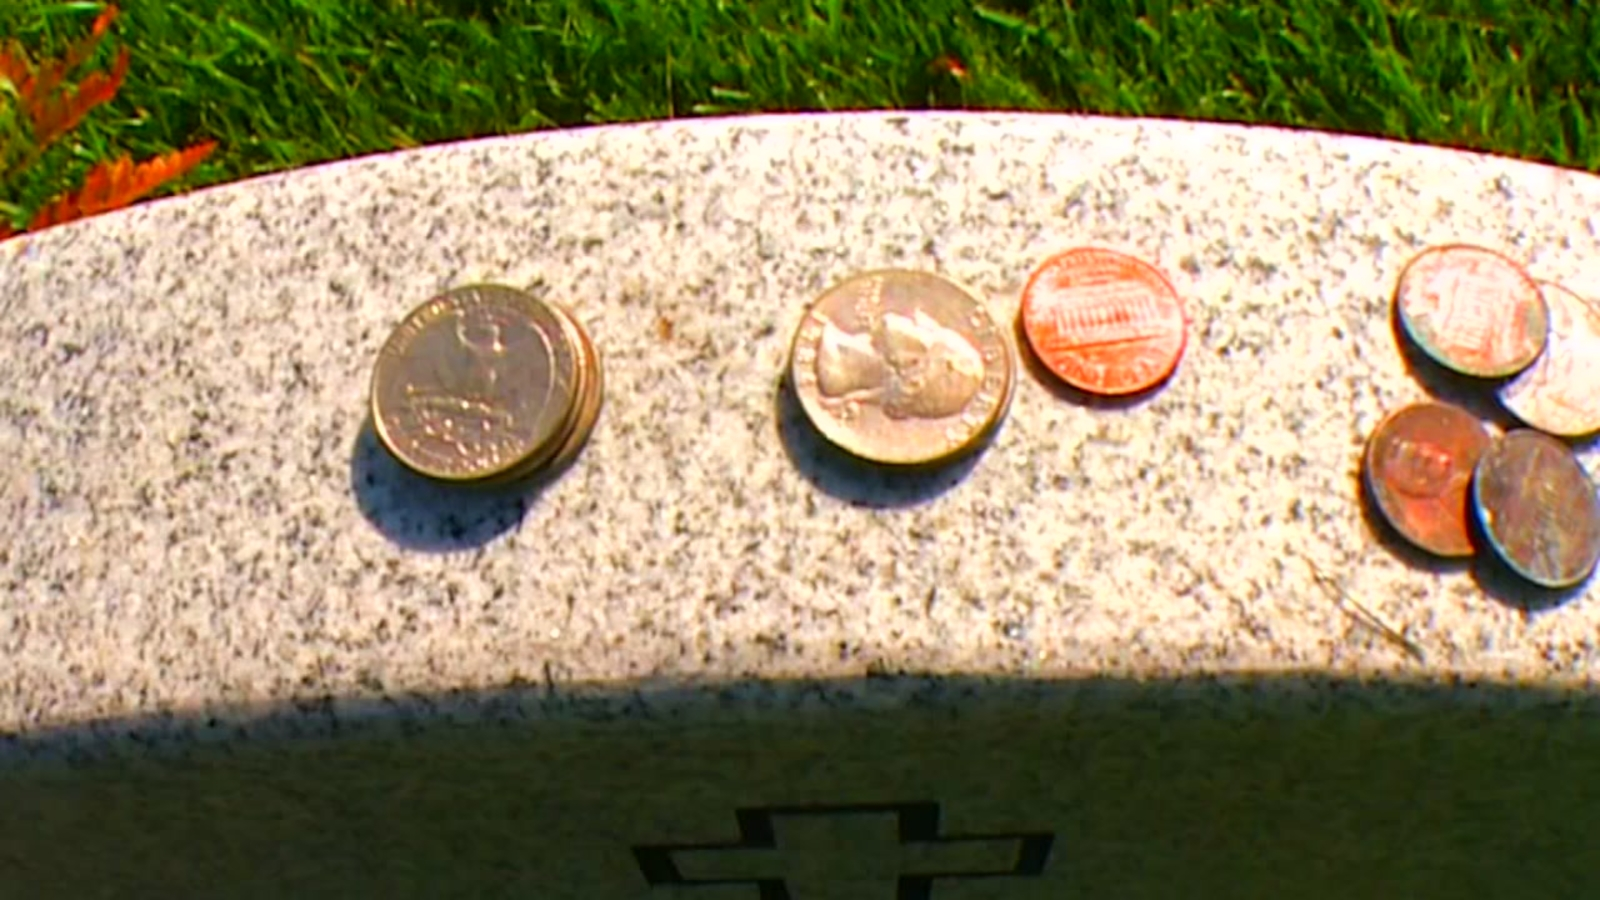 What do coins on military tombstones mean?